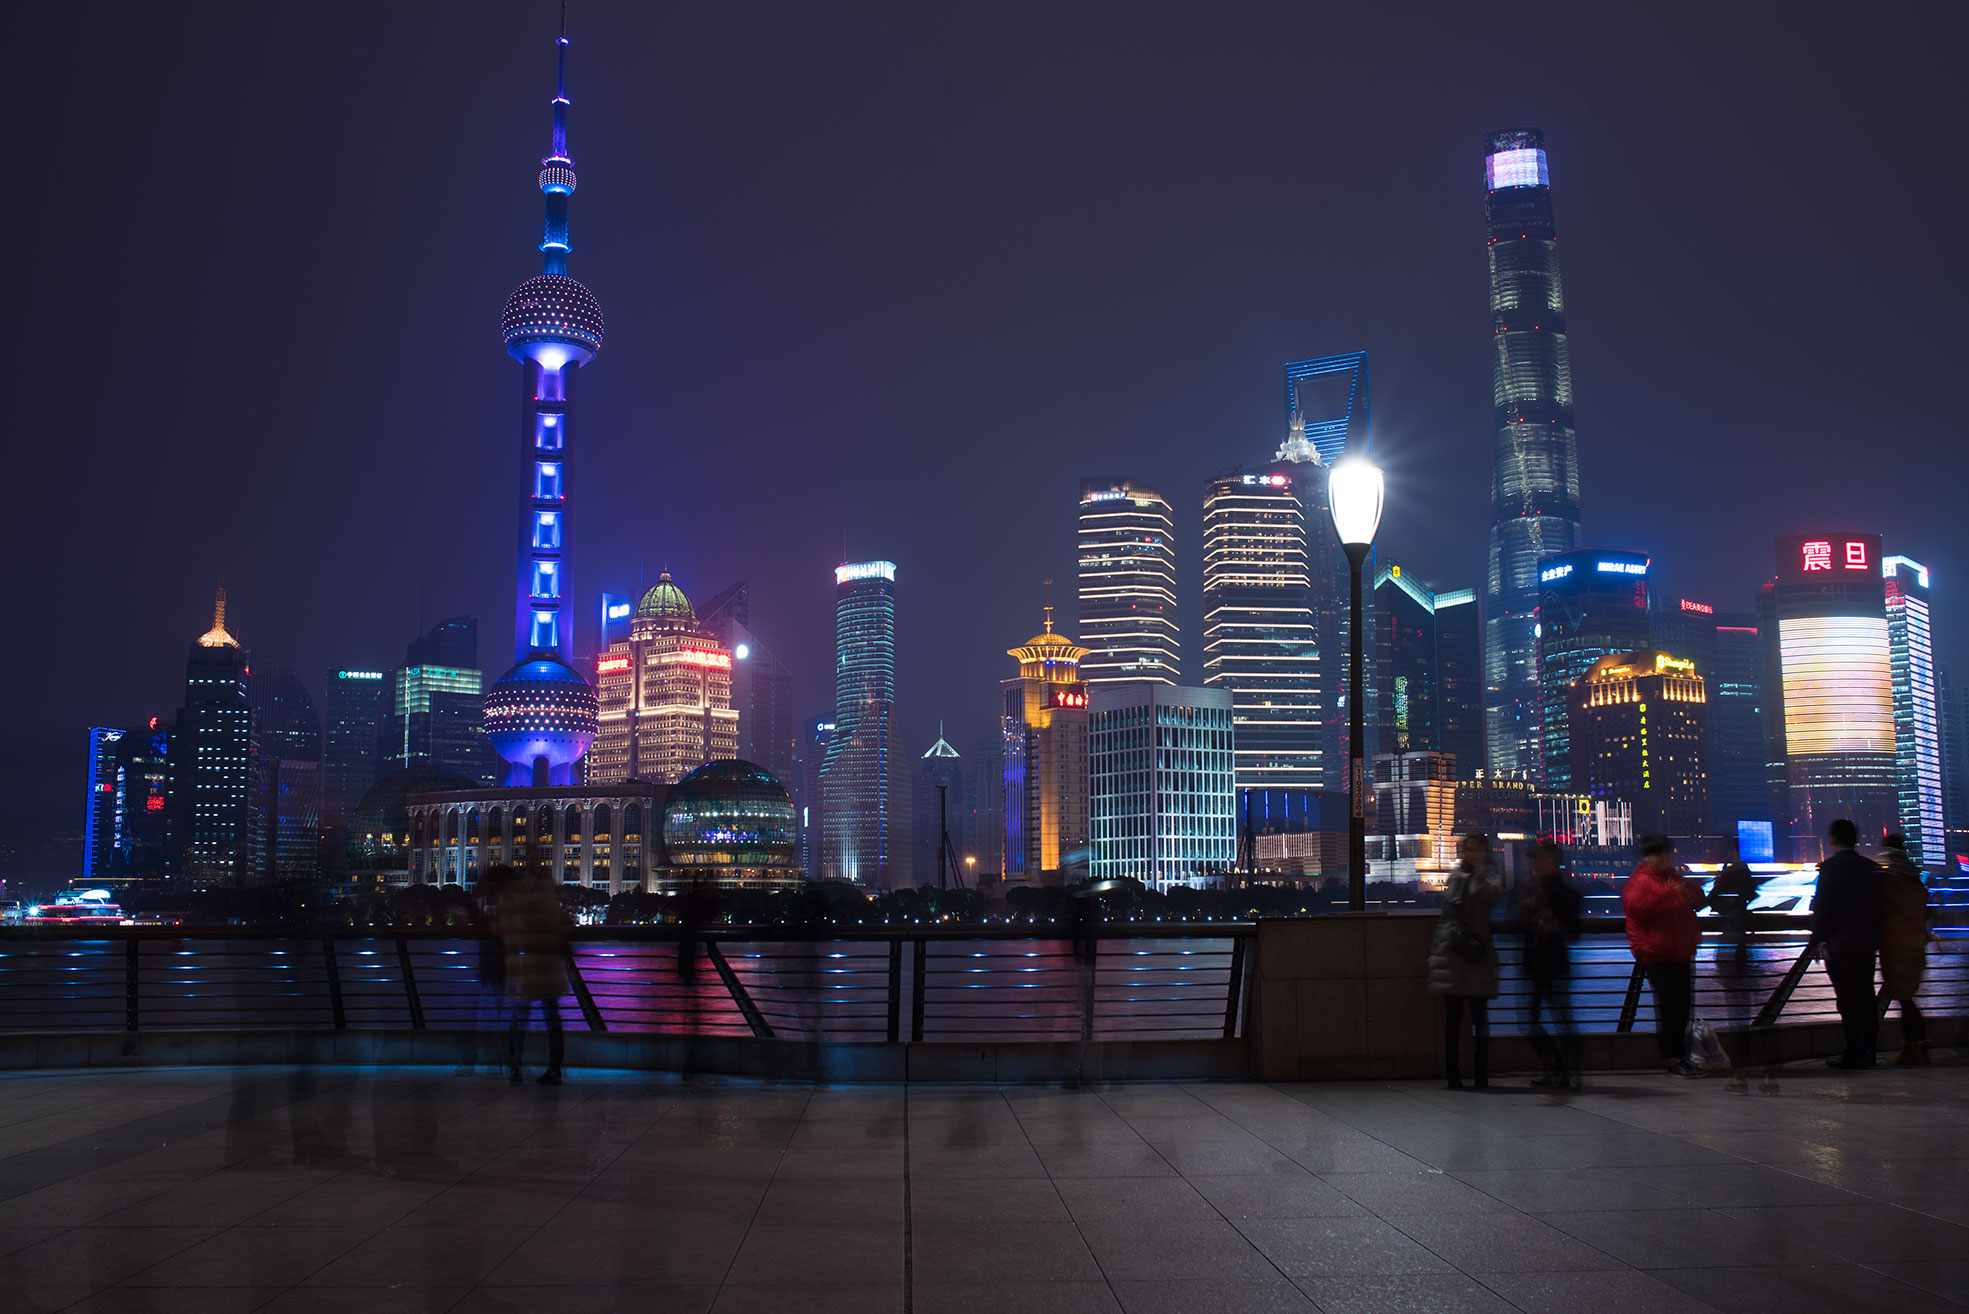 Skyline Shanghai by night